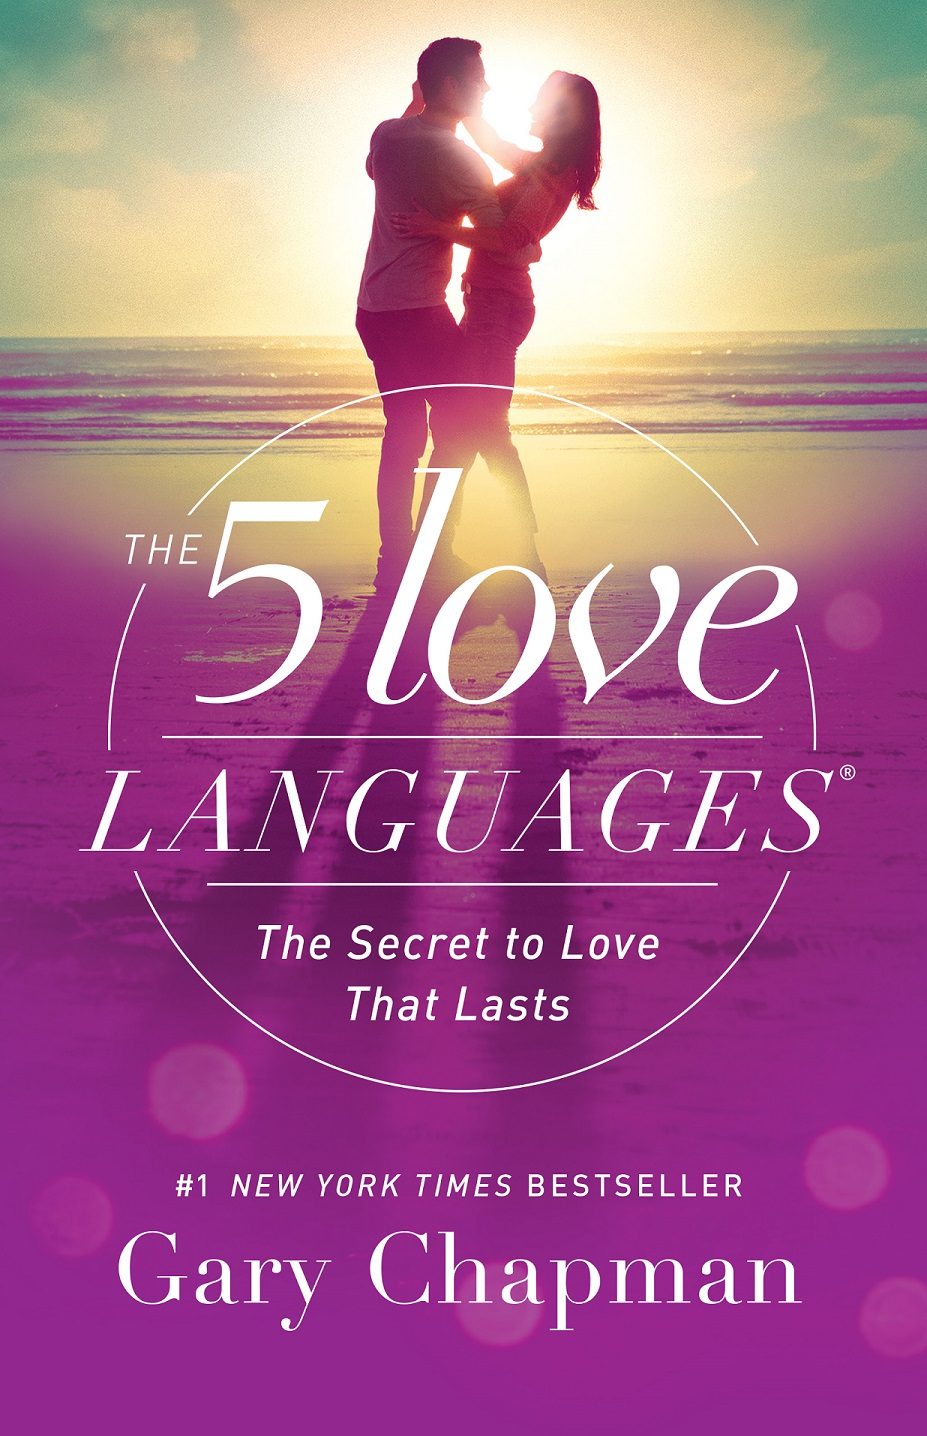 The 5 Love Languages Discussion Group